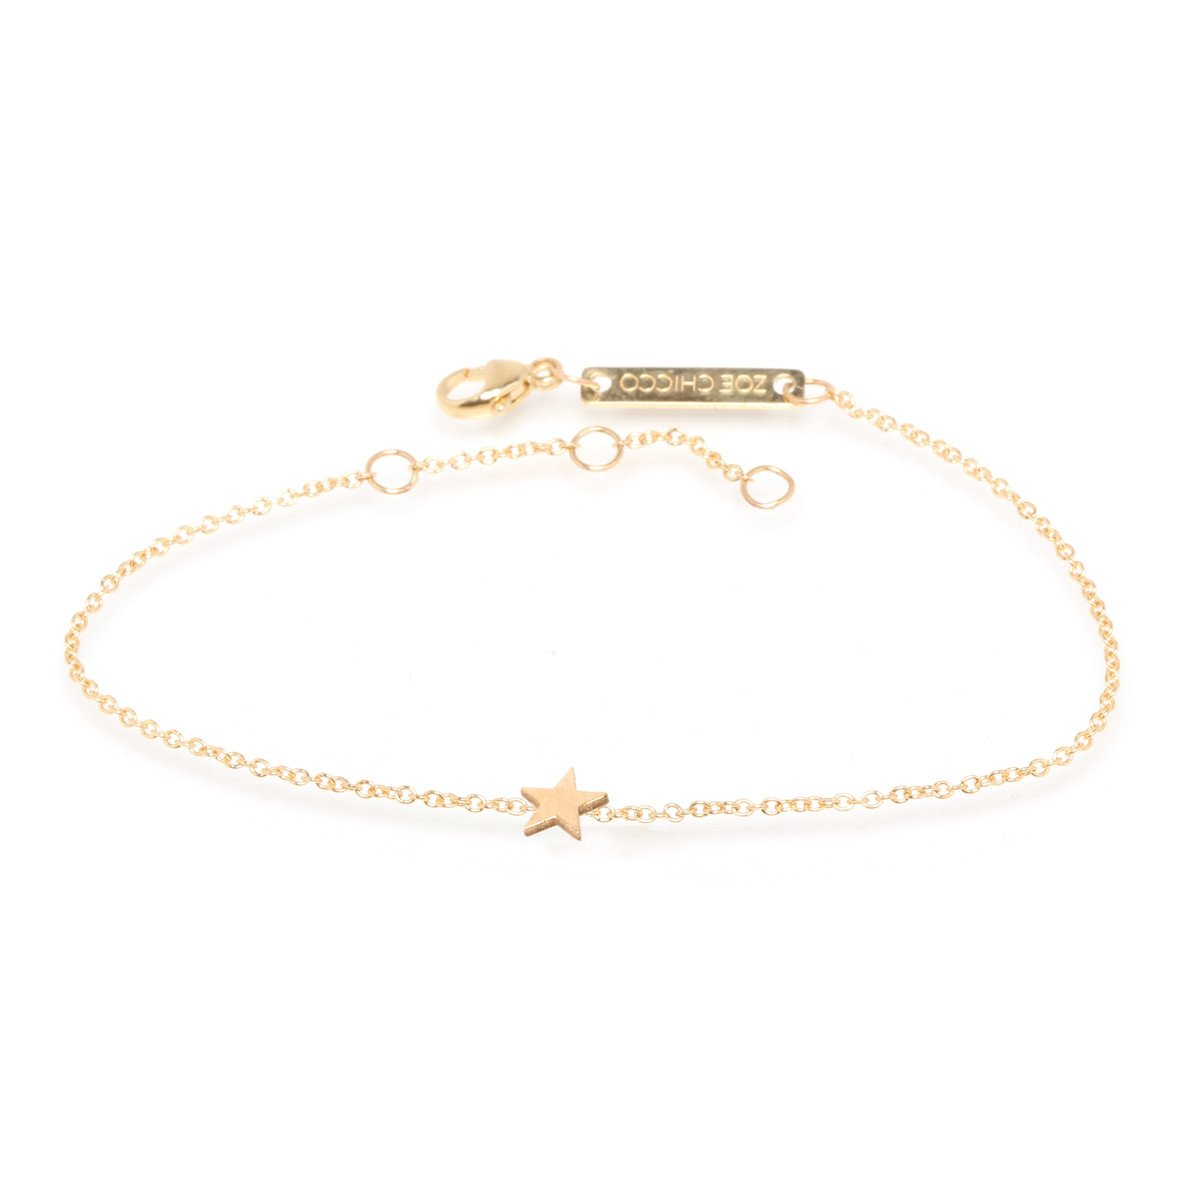 Zoe Chicco 14k Itty Bitty Star Bracelet